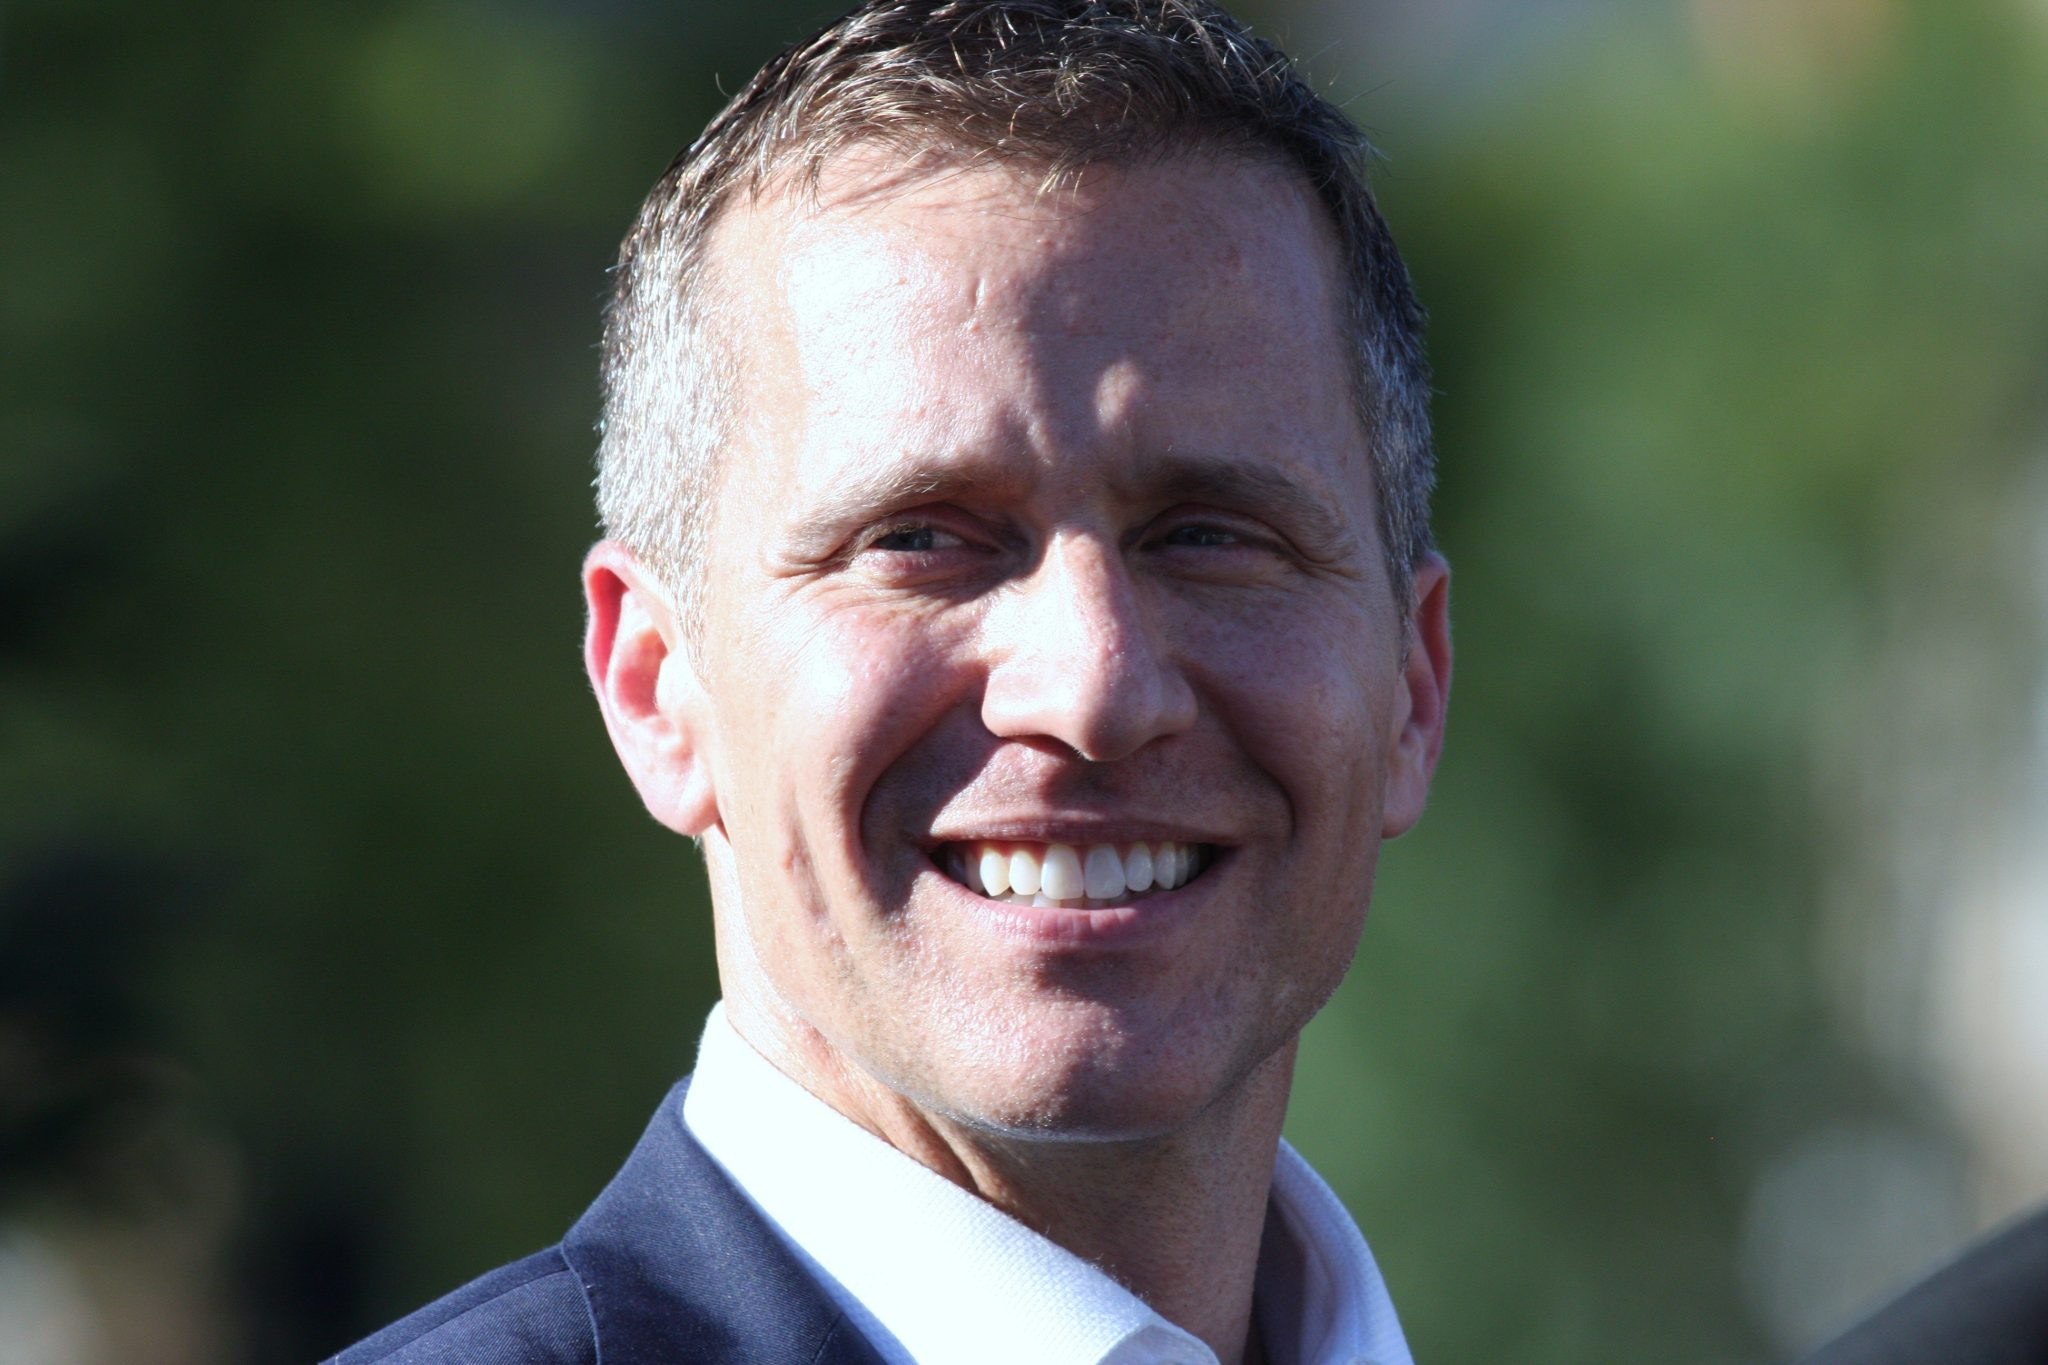 Community Leaders Express Support for Missouri Governor Greitens' Tax Plan for Working Families